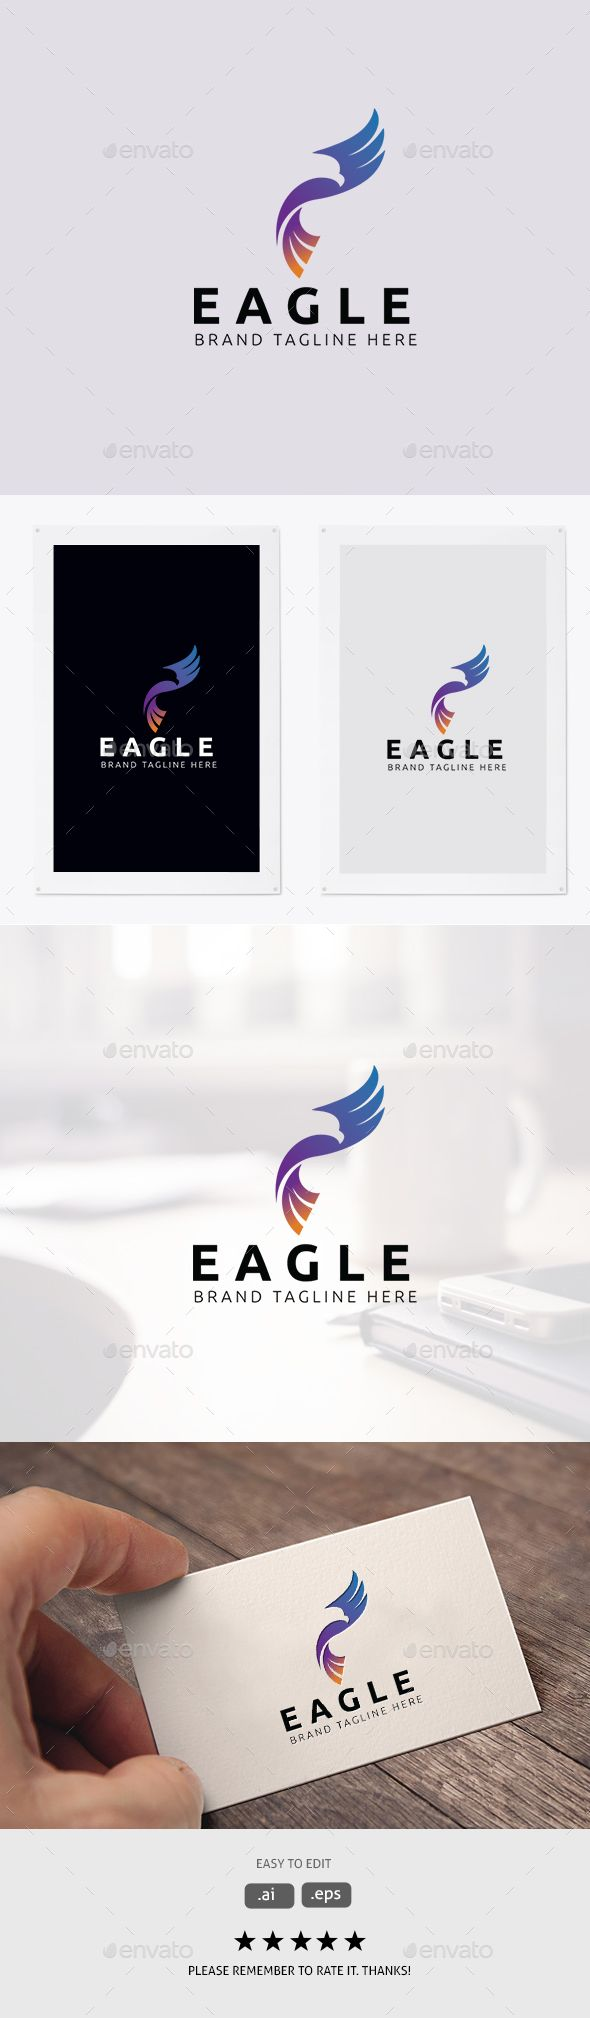 Eagle #Logo - #Animals Logo #Templates Download here:  https://graphicriver.net/item/eagle-logo/20298341?ref=alena994